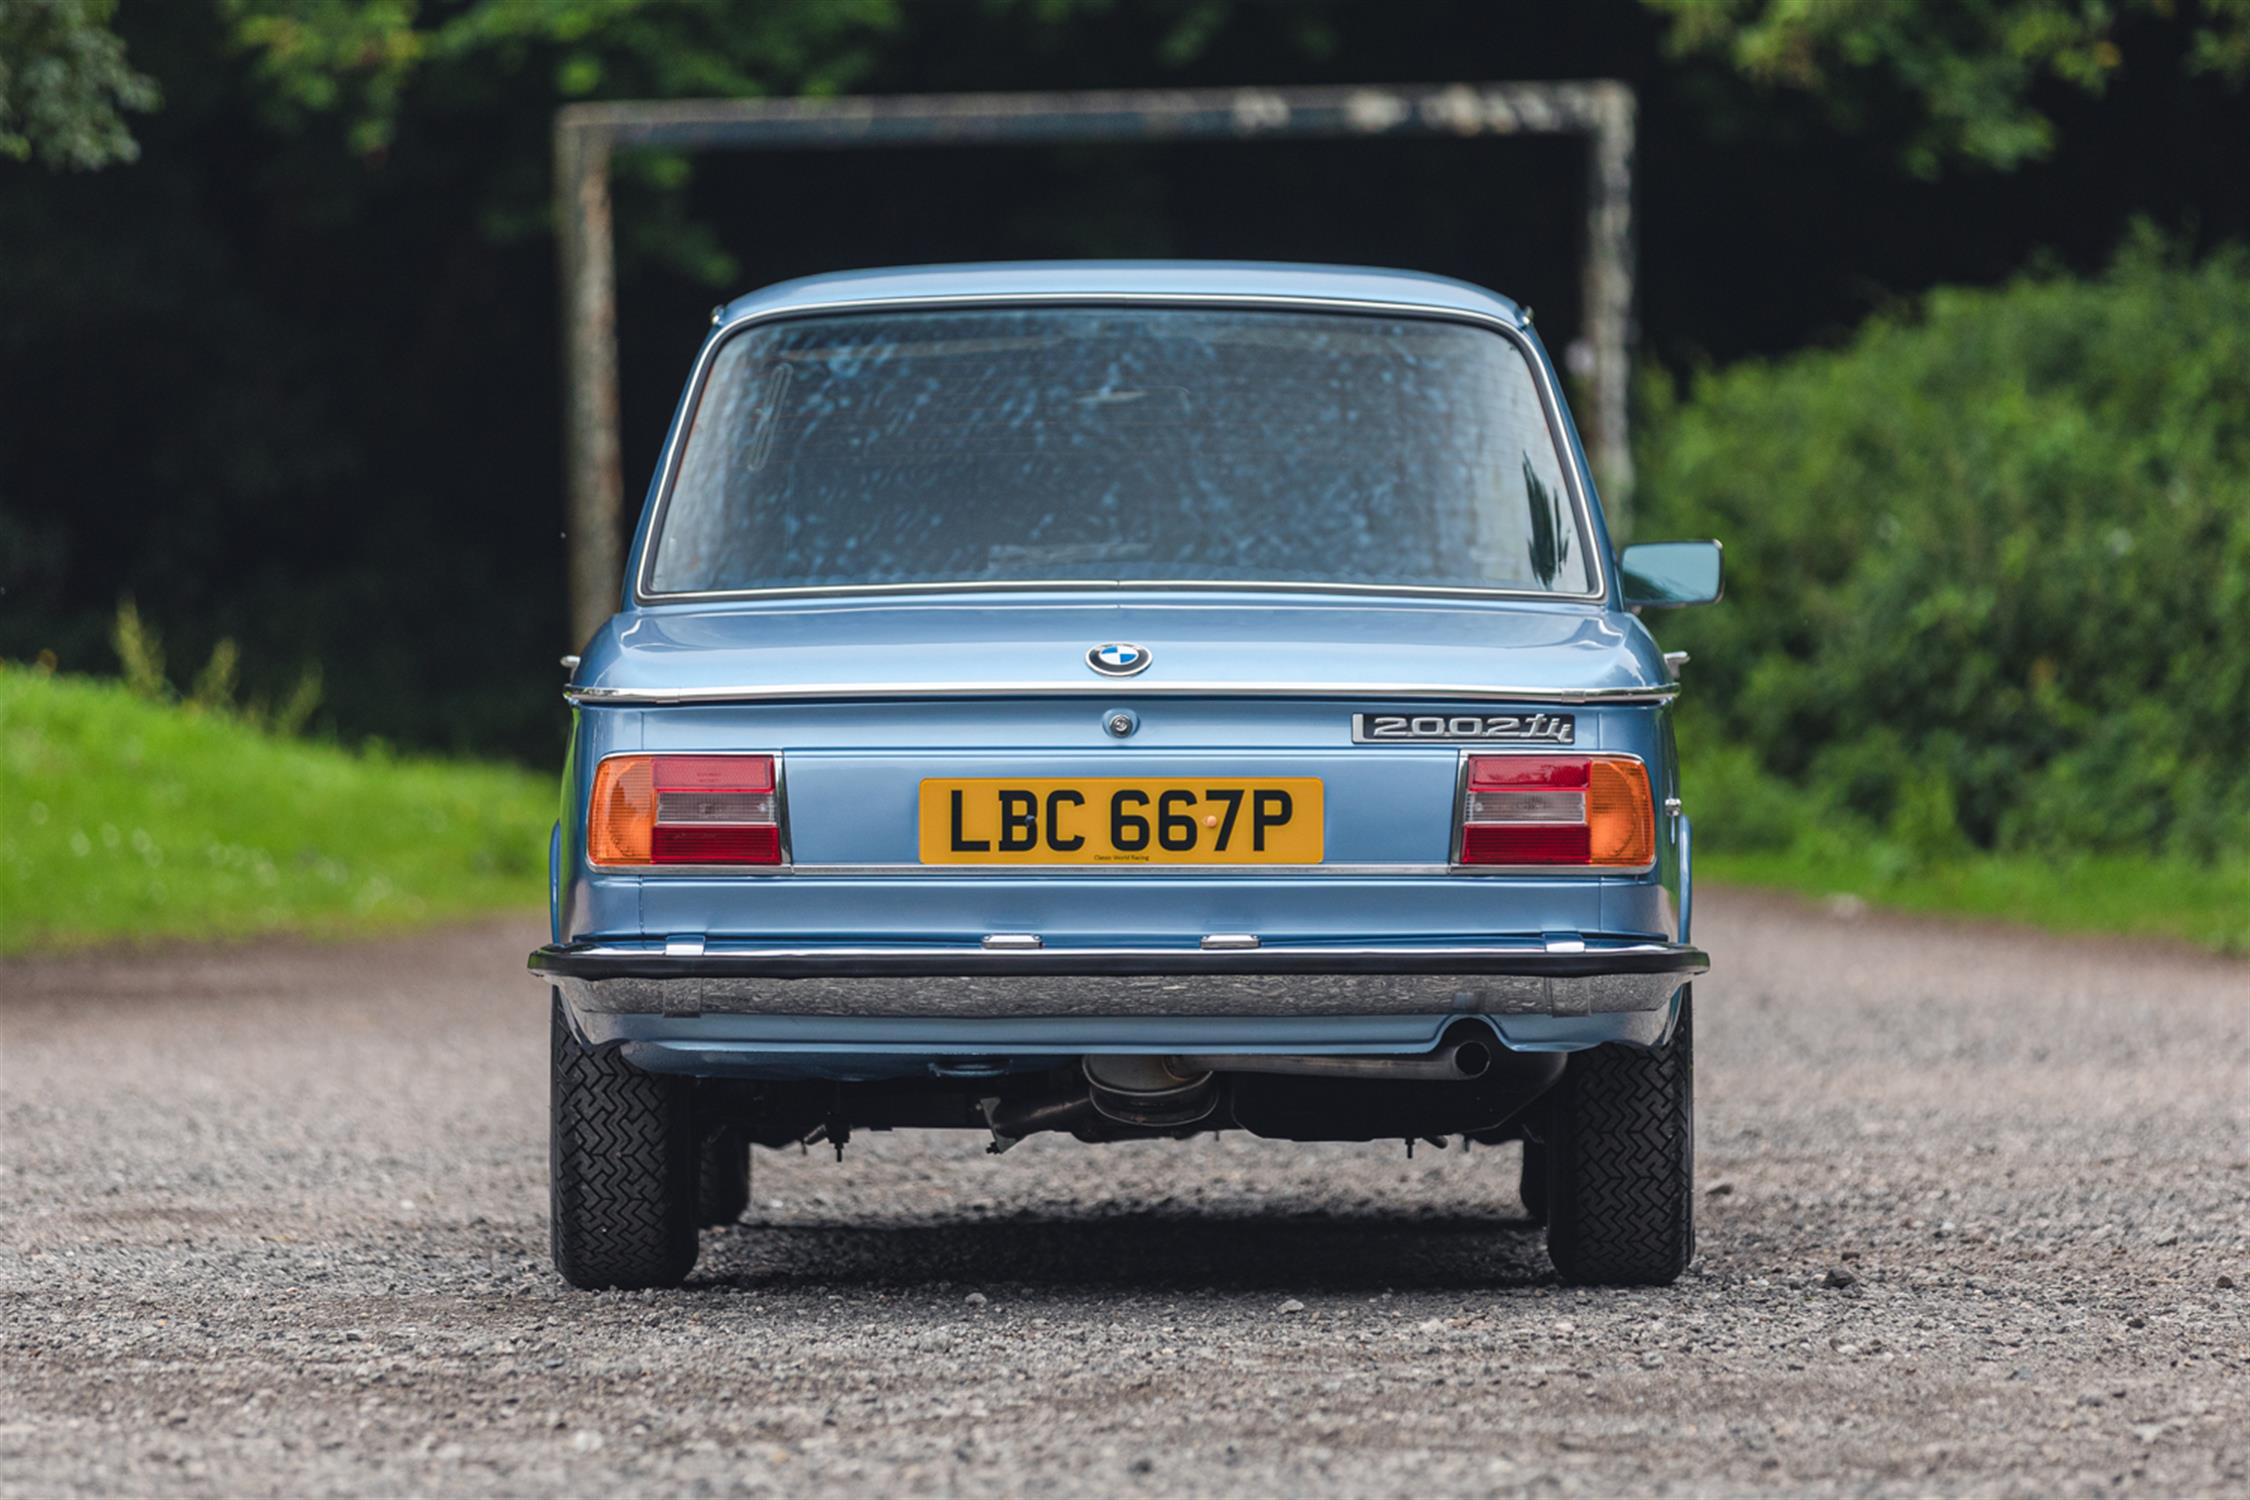 1975 BMW 2002 Tii - Image 7 of 10